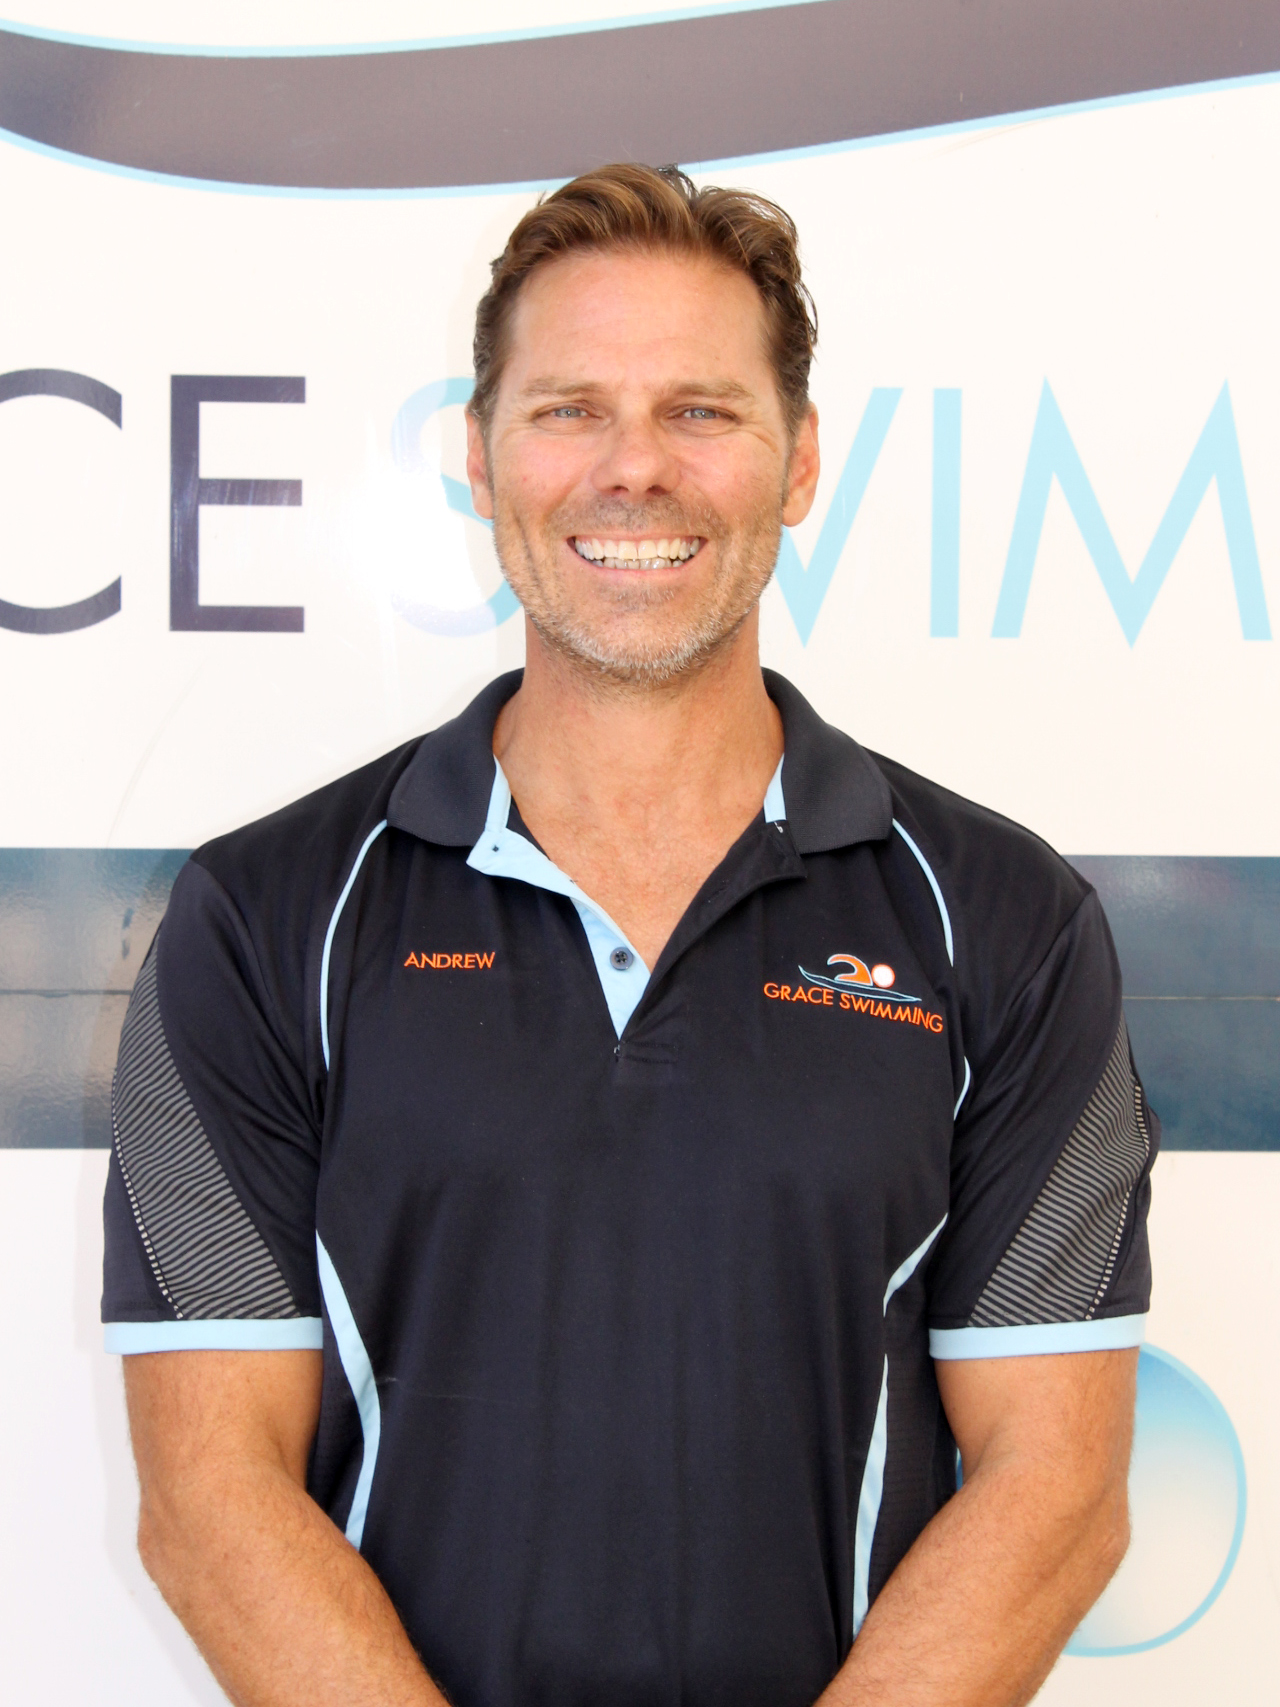 Andrew - Aquatics CoordinatorAndrew has been working in the Aquatic Industry for 20 years, and is now our Aquatics Coordinator at Grace Swimming. He began Lifeguarding in the 90's and then went on to teach swimming. As he travelled around Australia he gained invaluable experience and worked in every role imaginable. His biggest achievement to date was designing and constructing his own Swim School in Roma.Andrew still stresses the importance of always having a mentor, and continuing to learn. Prior to joining us here at Grace Swimming in 2015, he held the lease of the Roma Swimming School for 9 years. His goal here is to know every swimmers name.